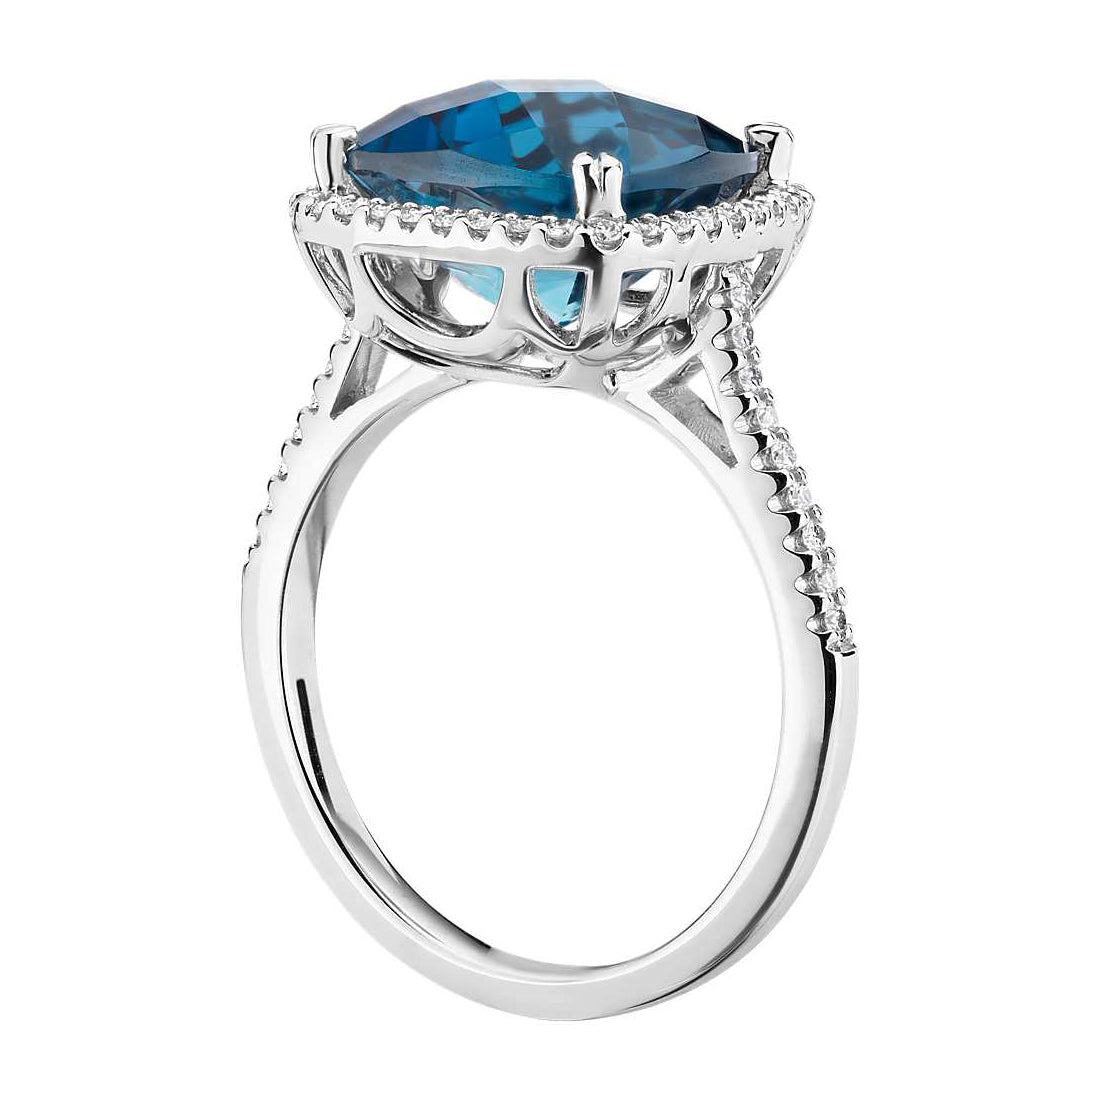 Cushion cut London blue topaz and diamonds ring - 2